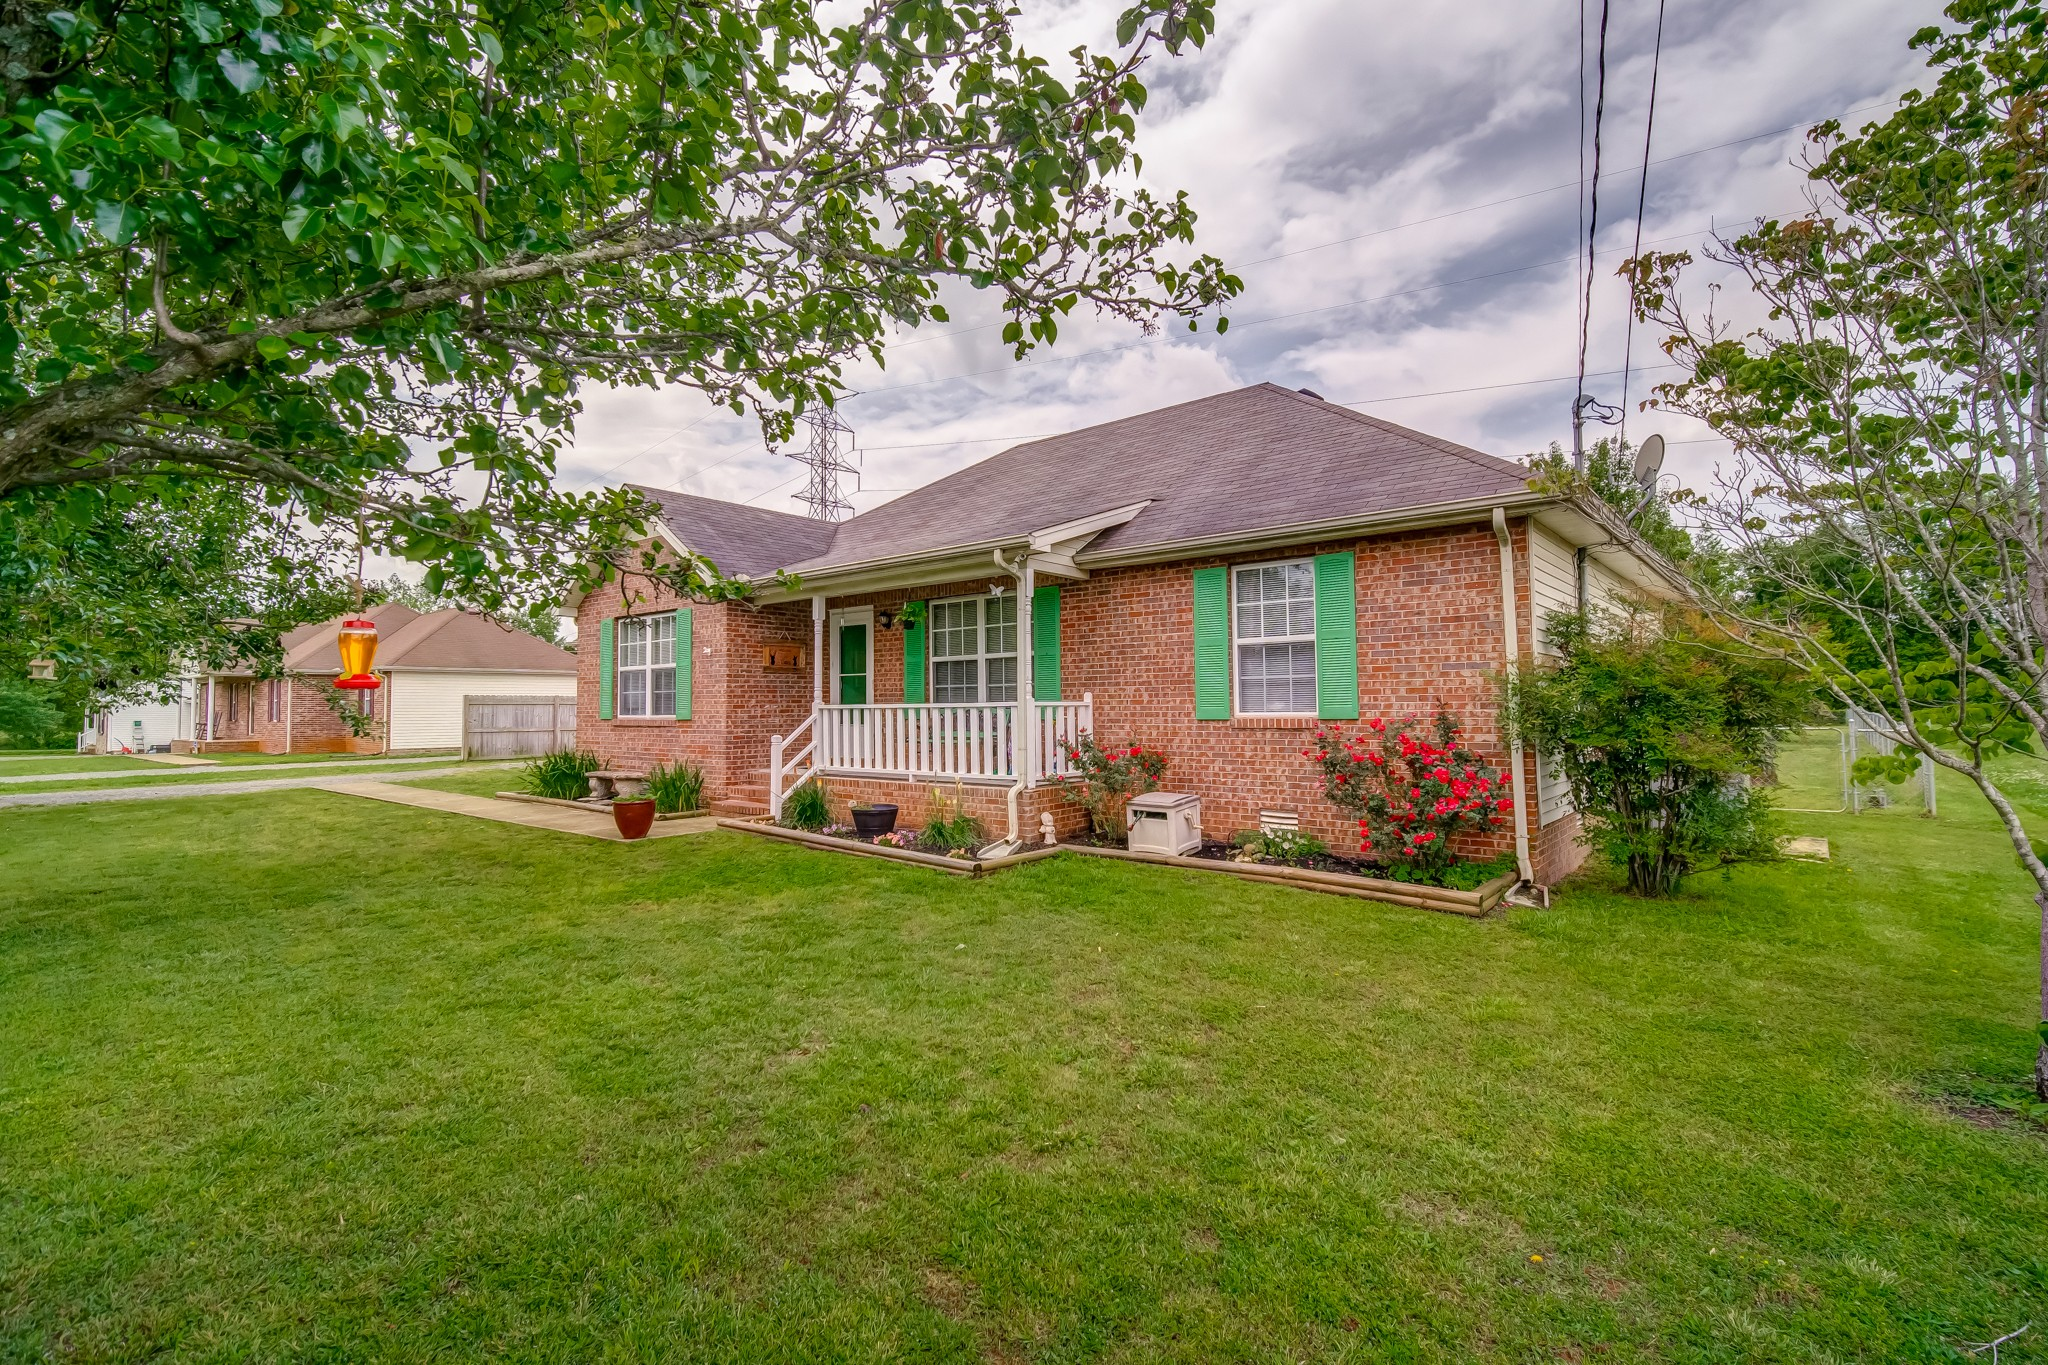 One level living in a great location! Well maintained home on a large fenced lot. Vaulted ceilings, fireplace, white cabinets and upgraded kitchen appliances are highlights. Quick access to highways and all that Murfreesboro has to offer. No HOA.